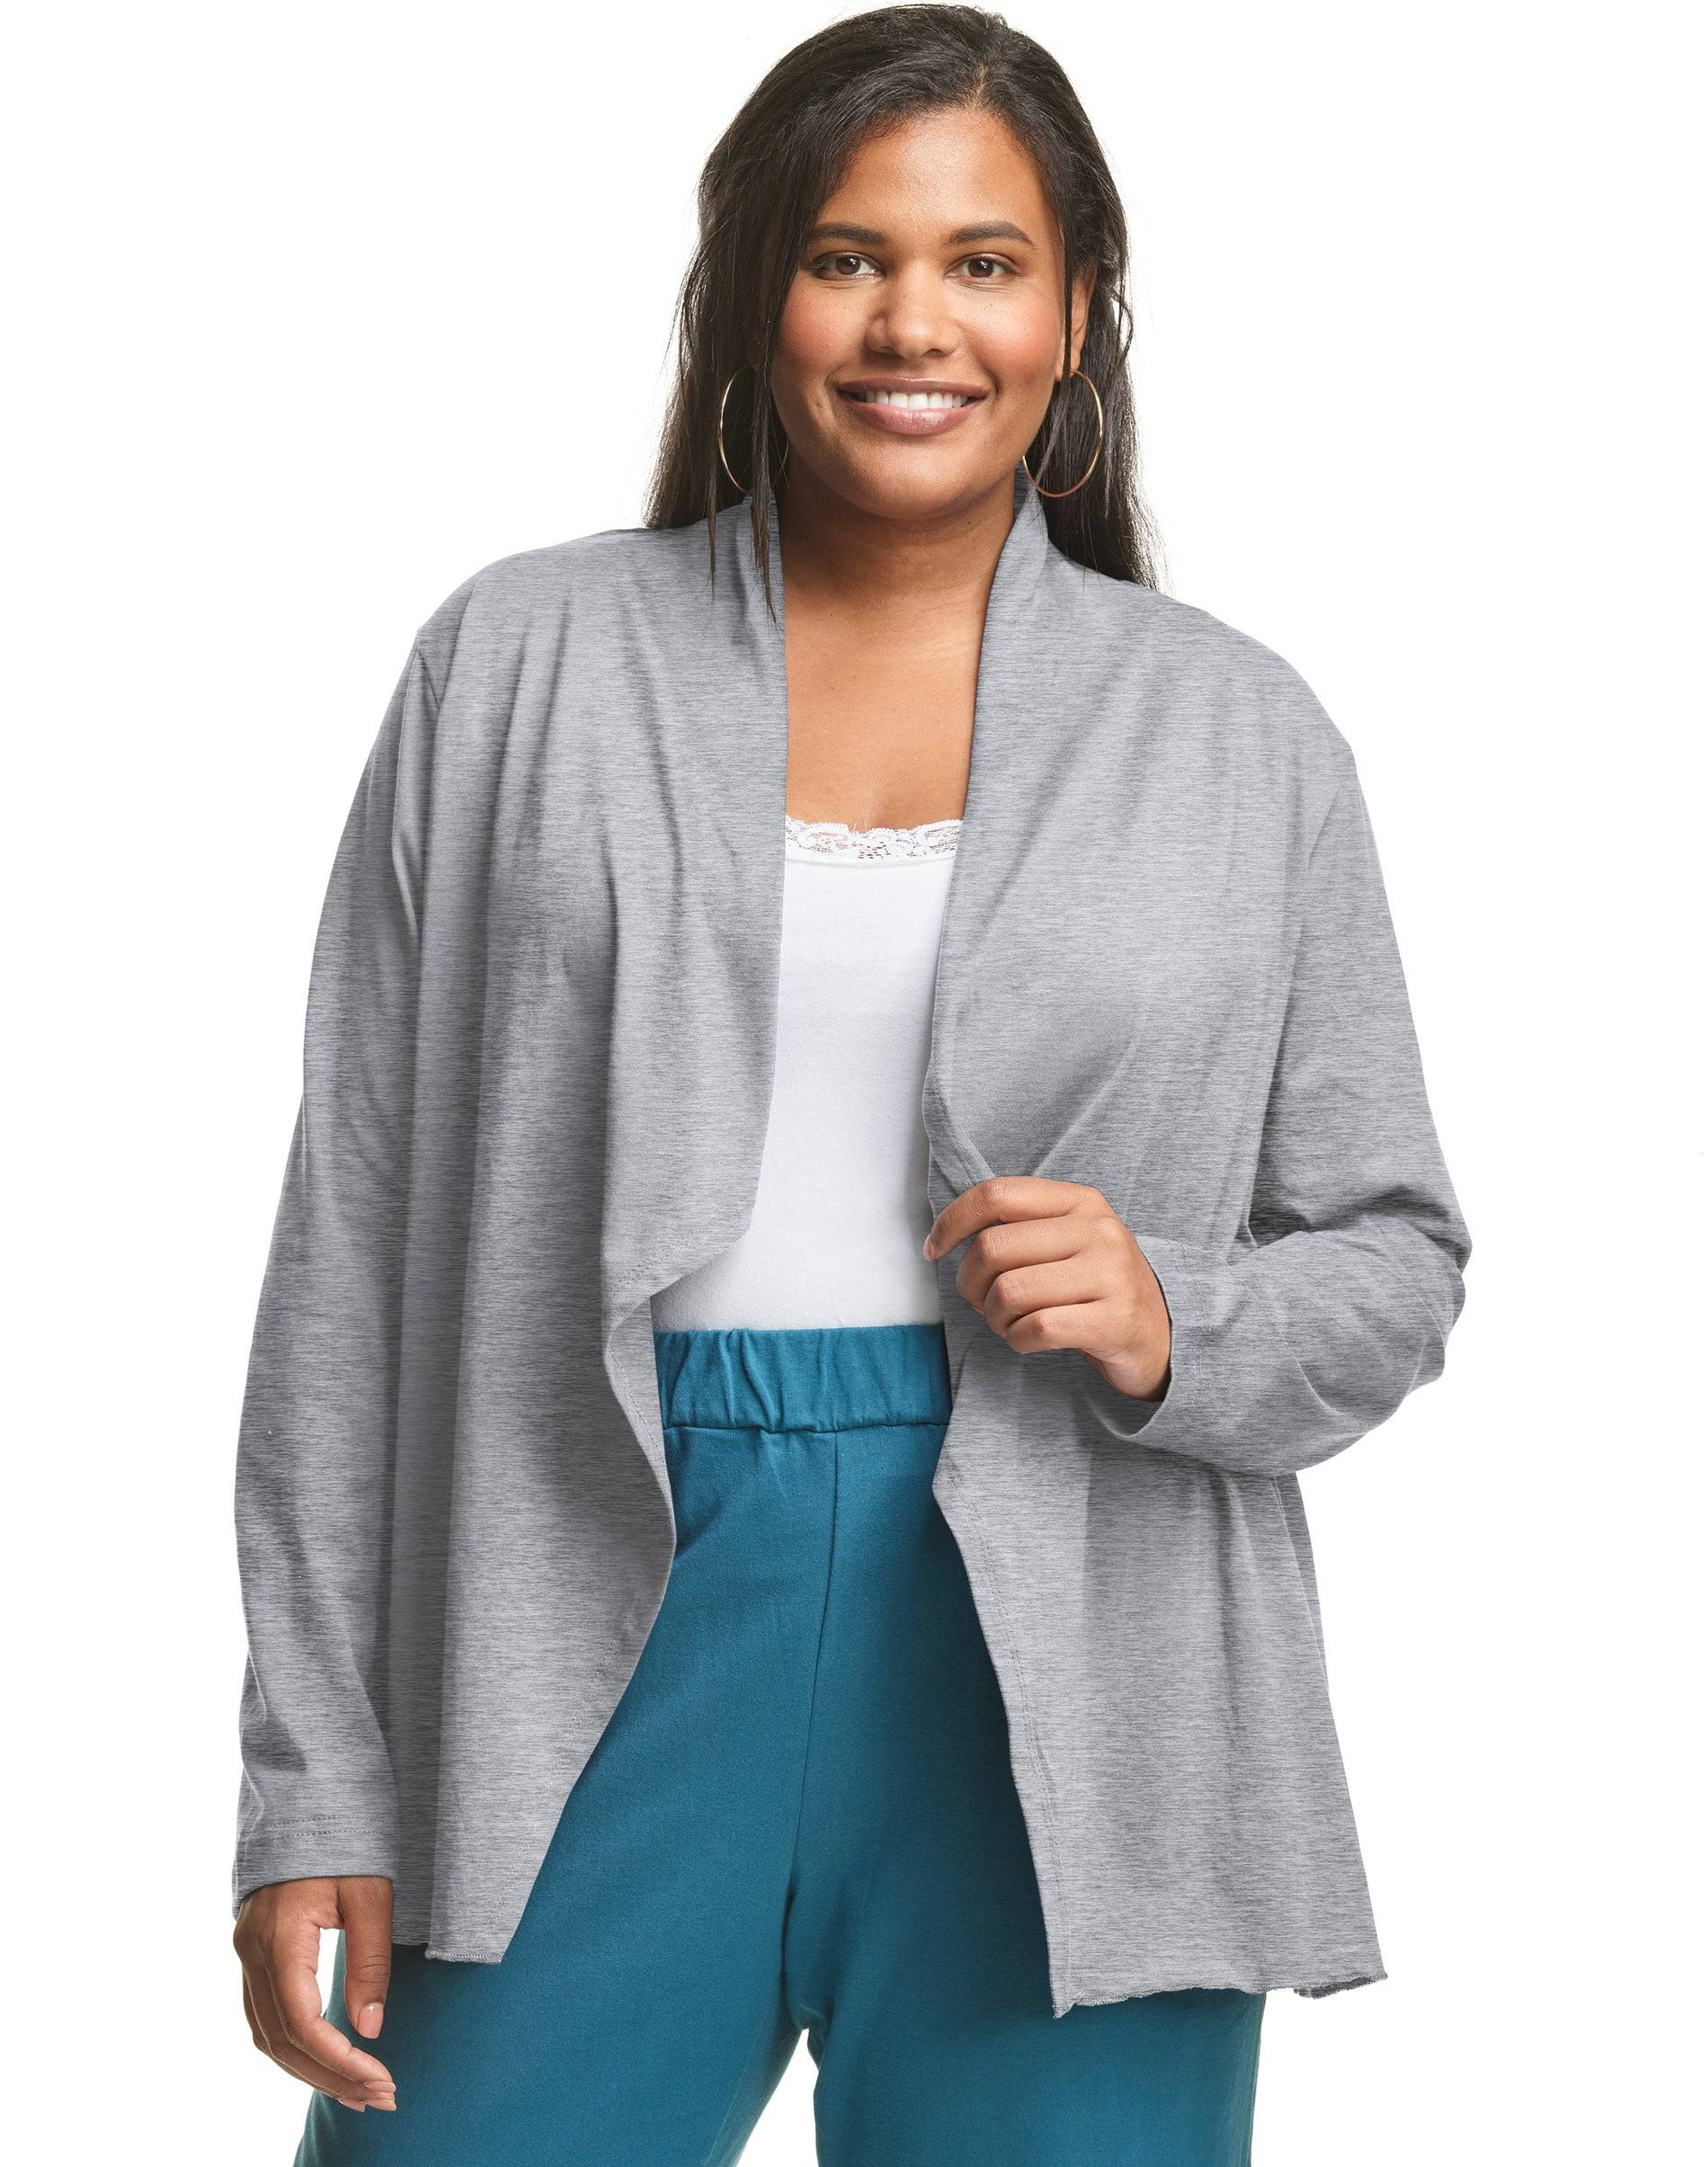 Just My Size Jersey Matchables Swing Cardigan Grey Heather 5X Women's